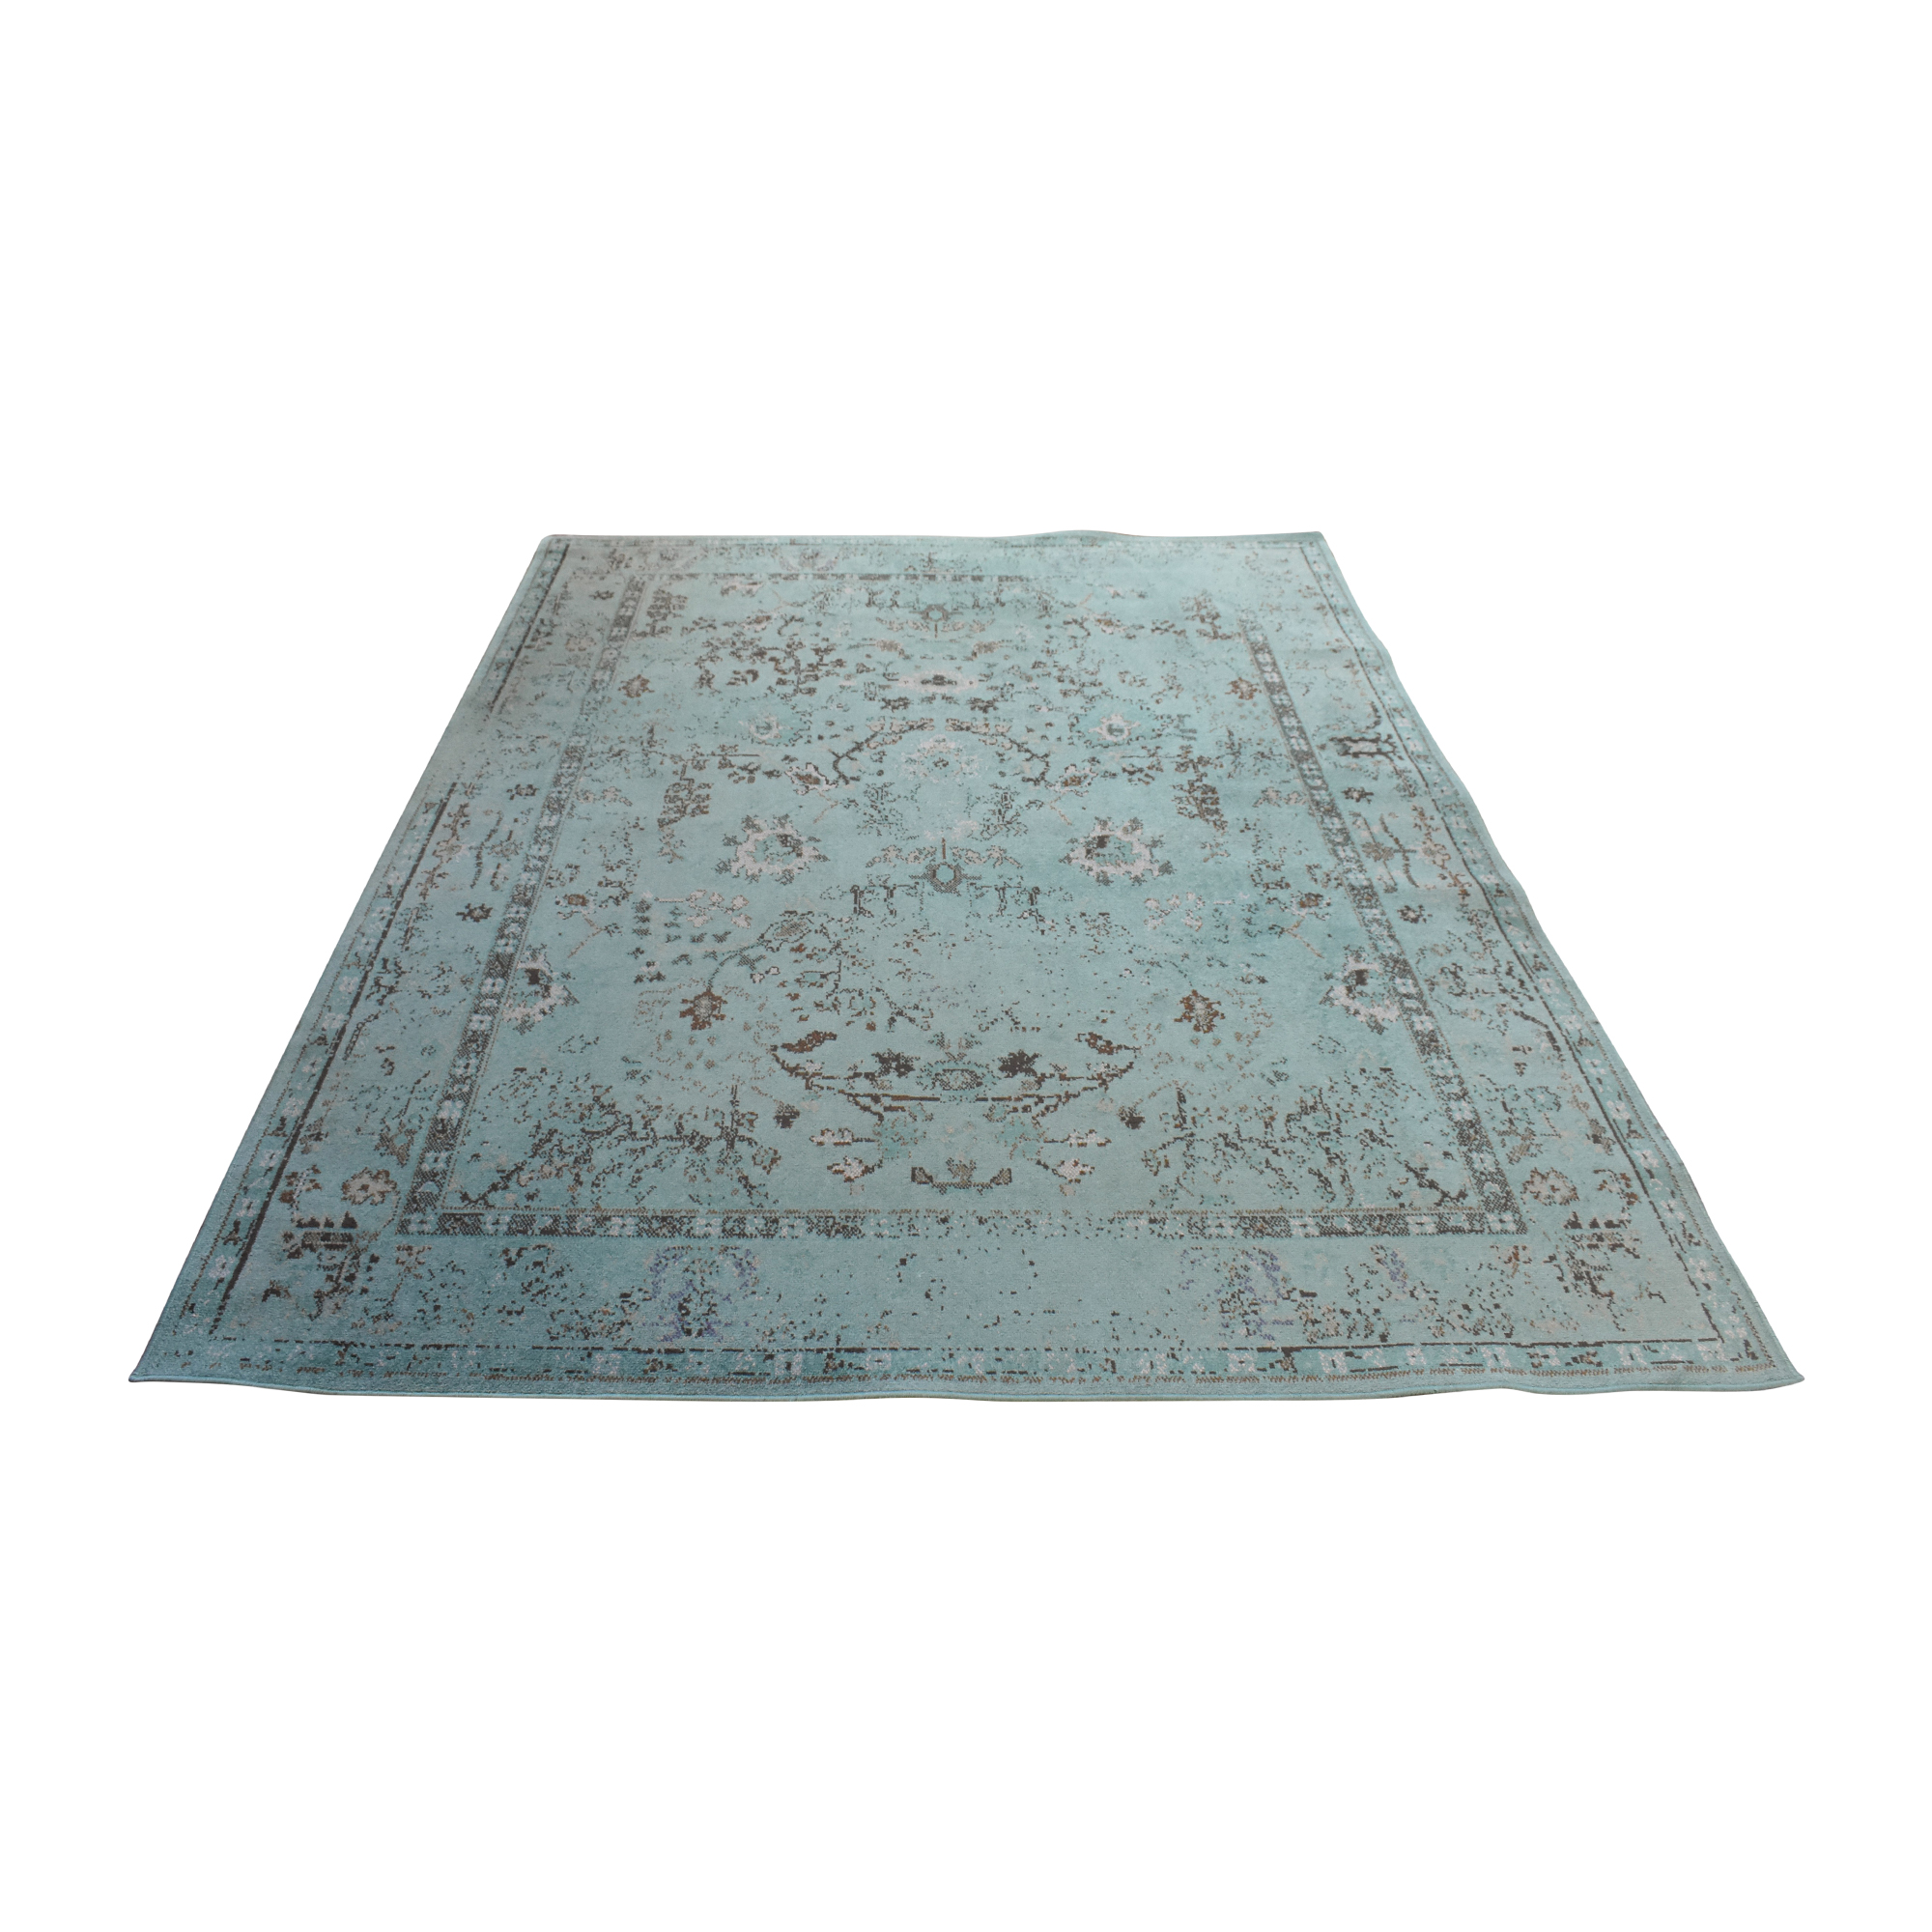 Oriental Weavers Sphinx Revival Rug Oriental Weavers